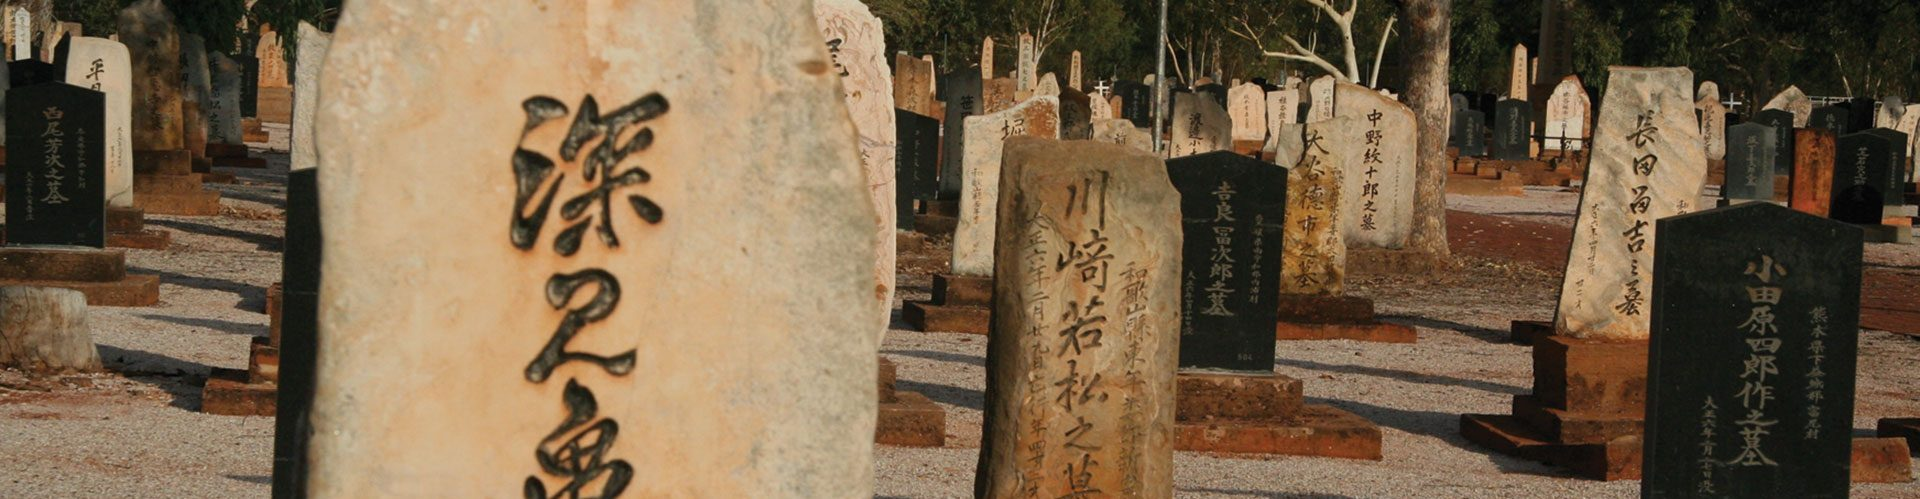 Japanese Cemetery Broome